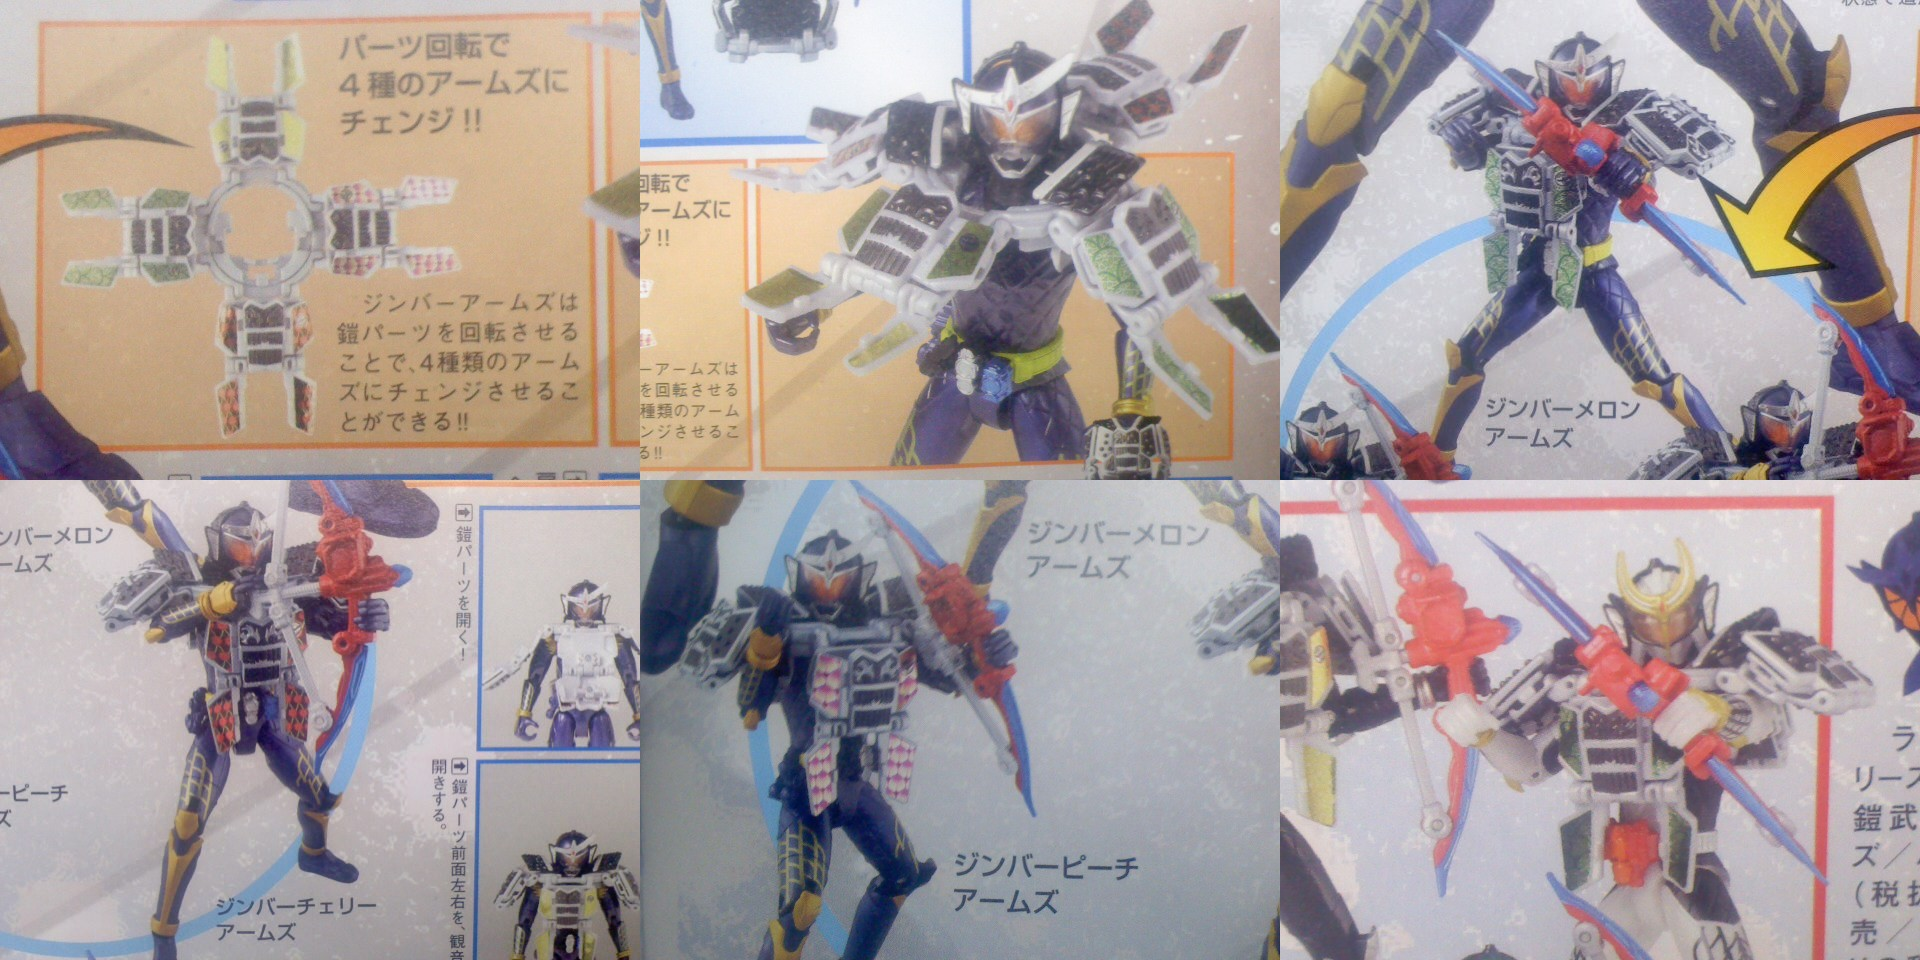 Arms Change Gaim Jinba Preview: Four Forms In One Release ...